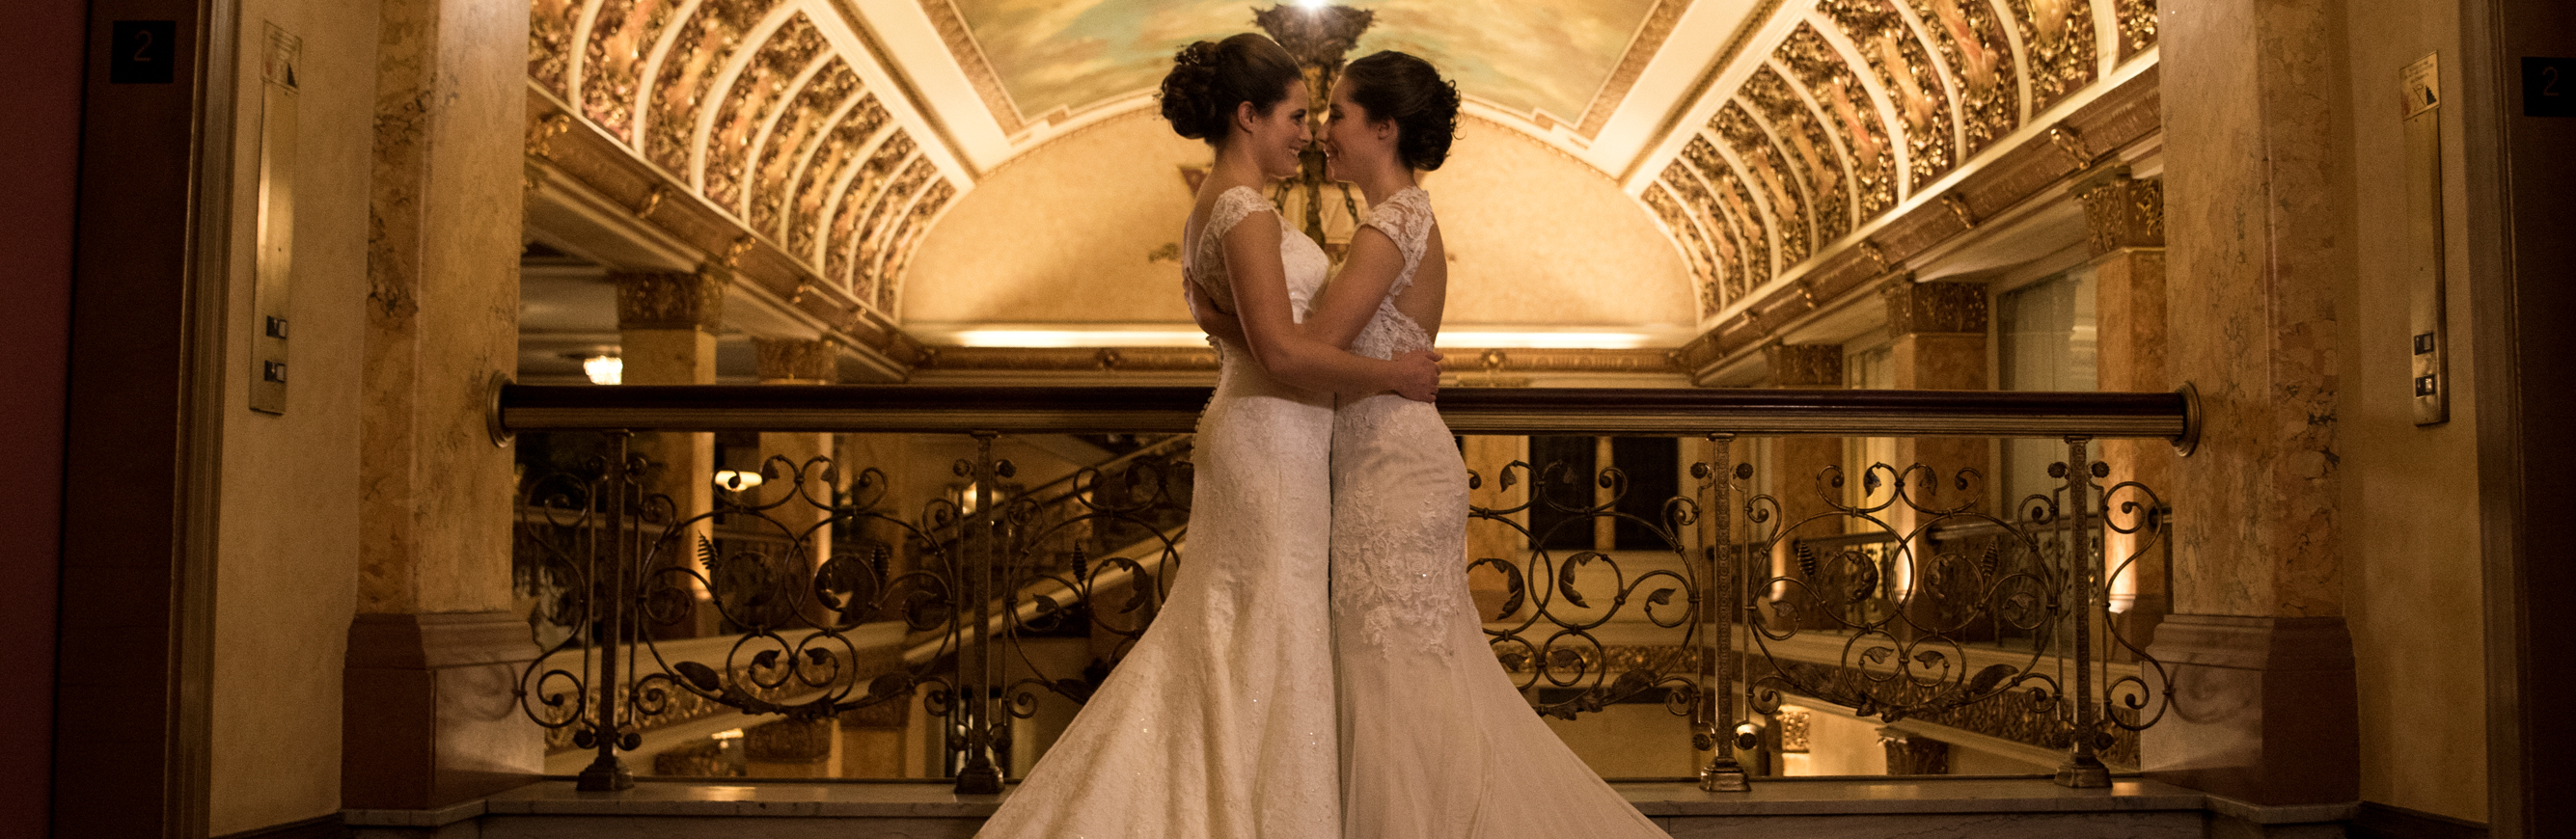 Milwaukee Lgbtq Weddings The Pfister Hotel Milwaukee